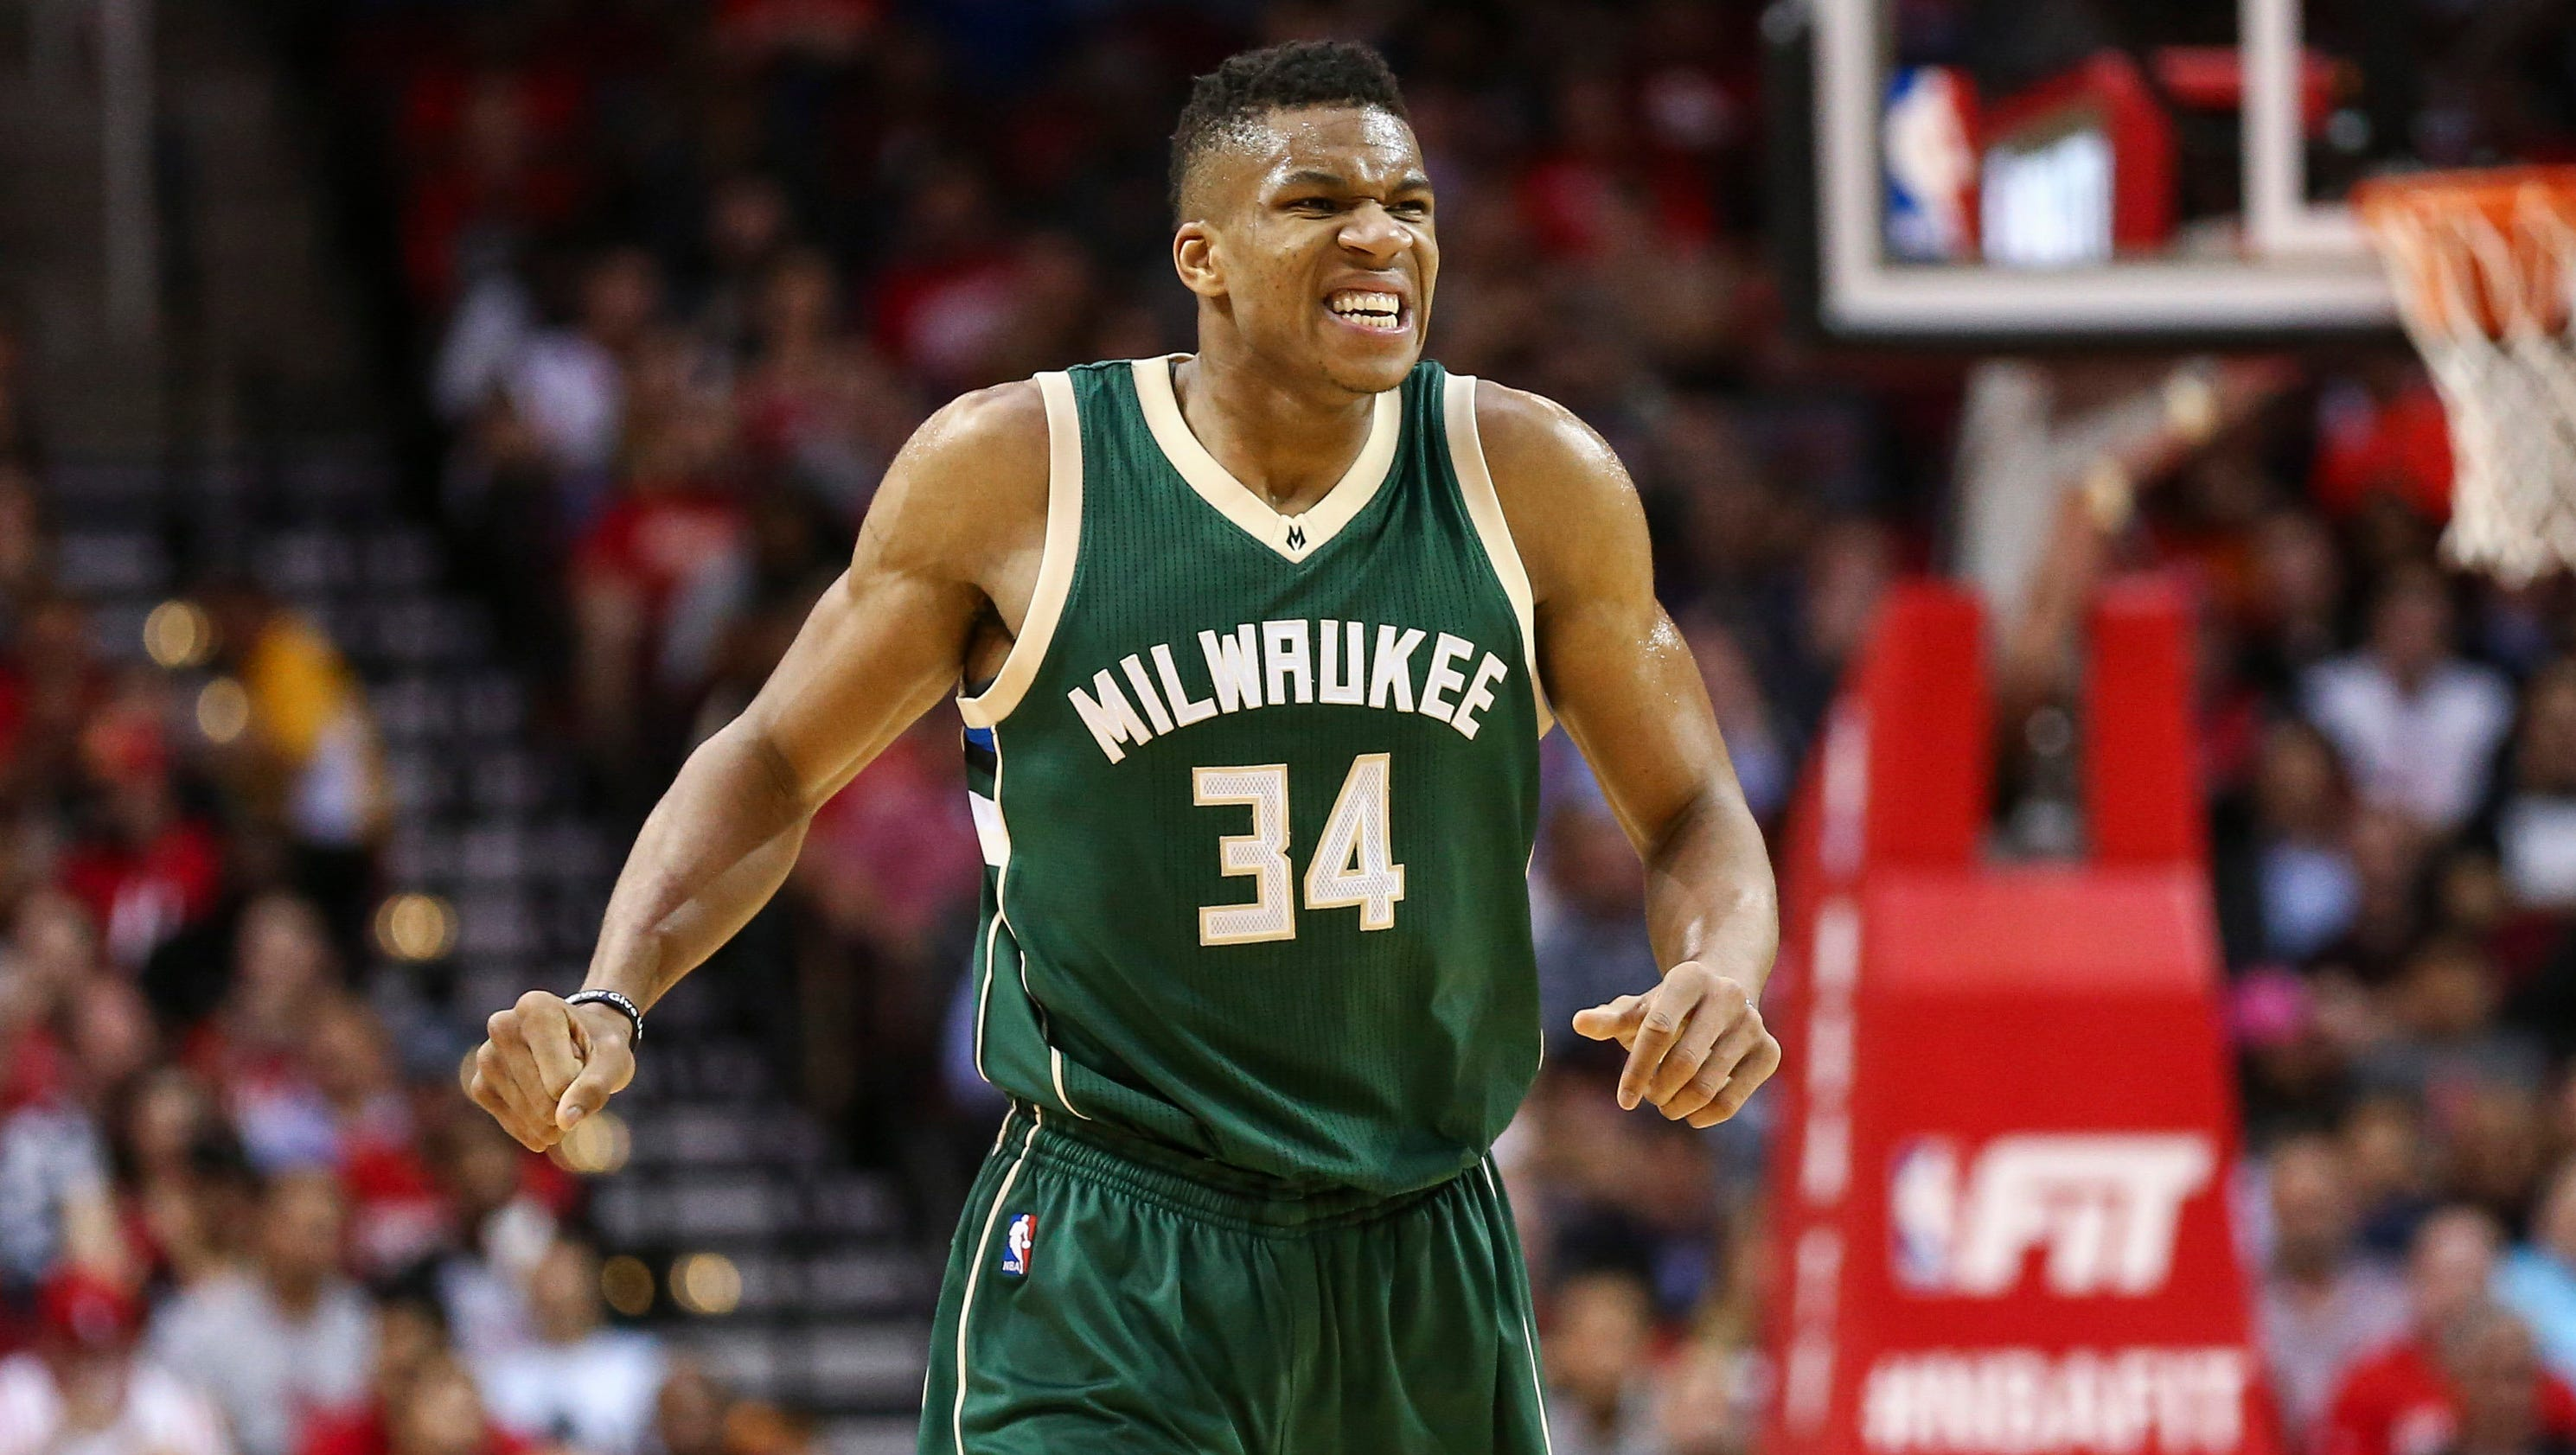 Antetokounmpo named starter for NBA All Star Game